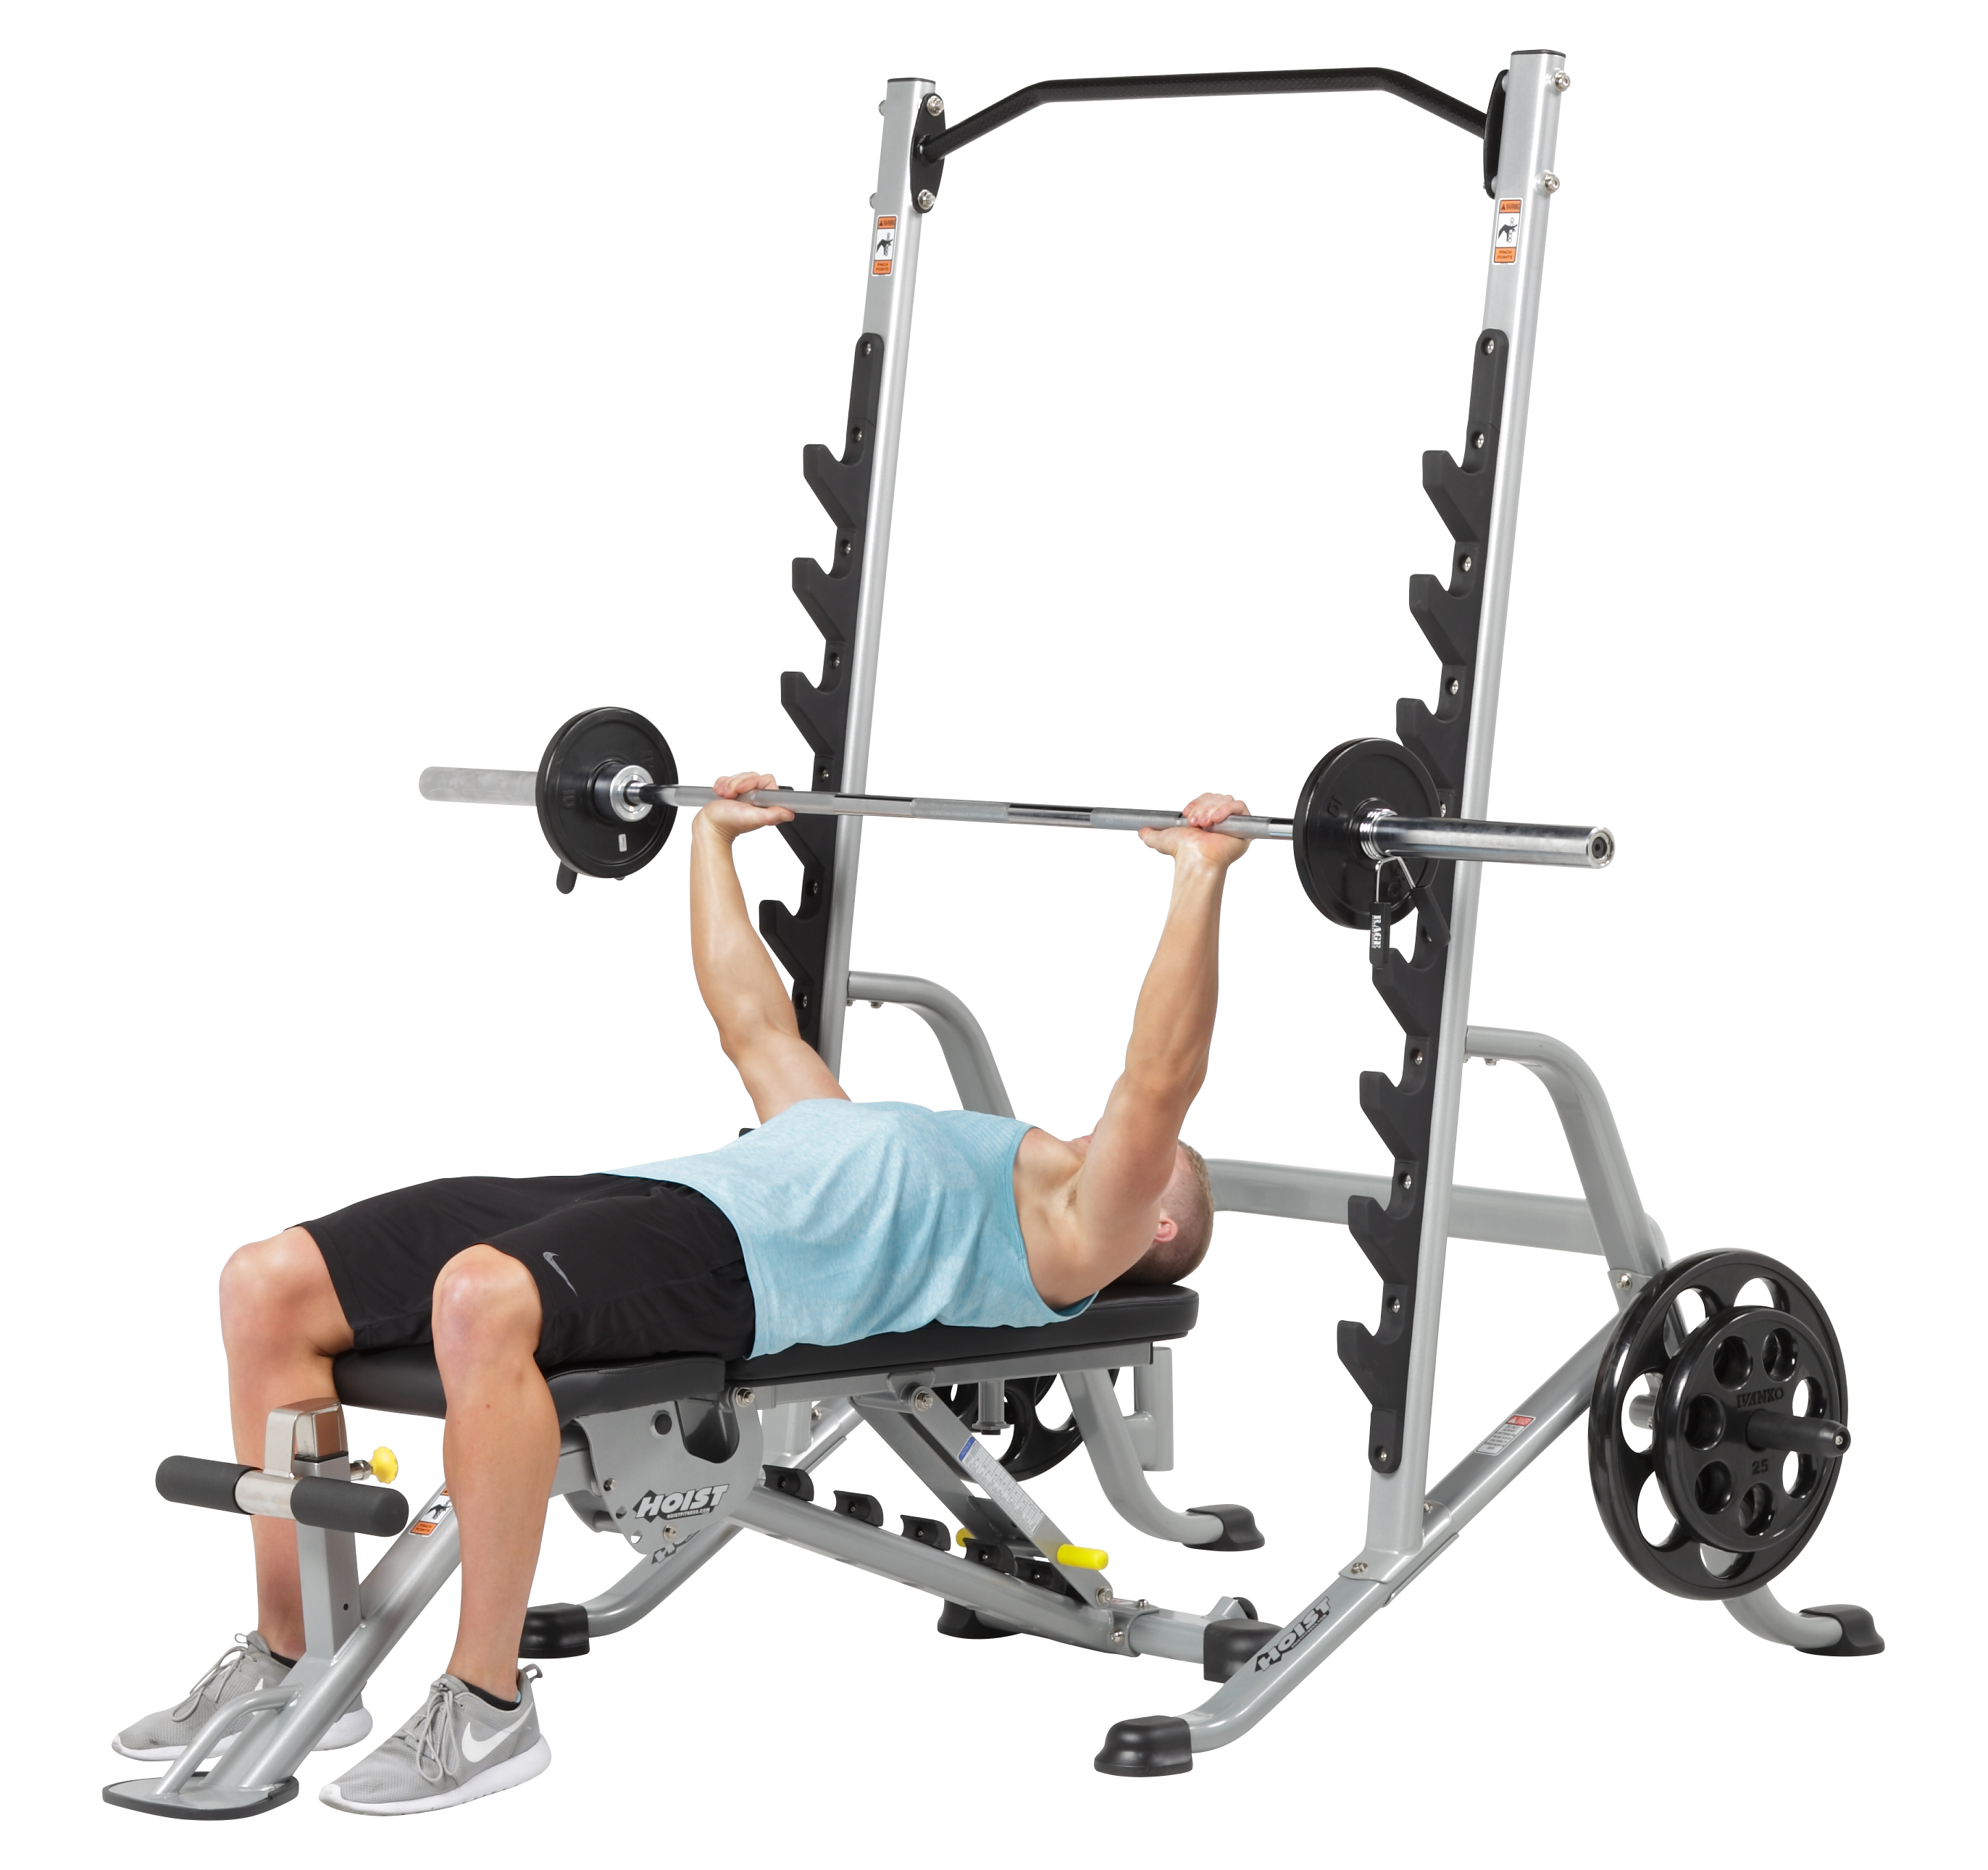 squat workout bench training press sorinex rack body attachment power for equipment